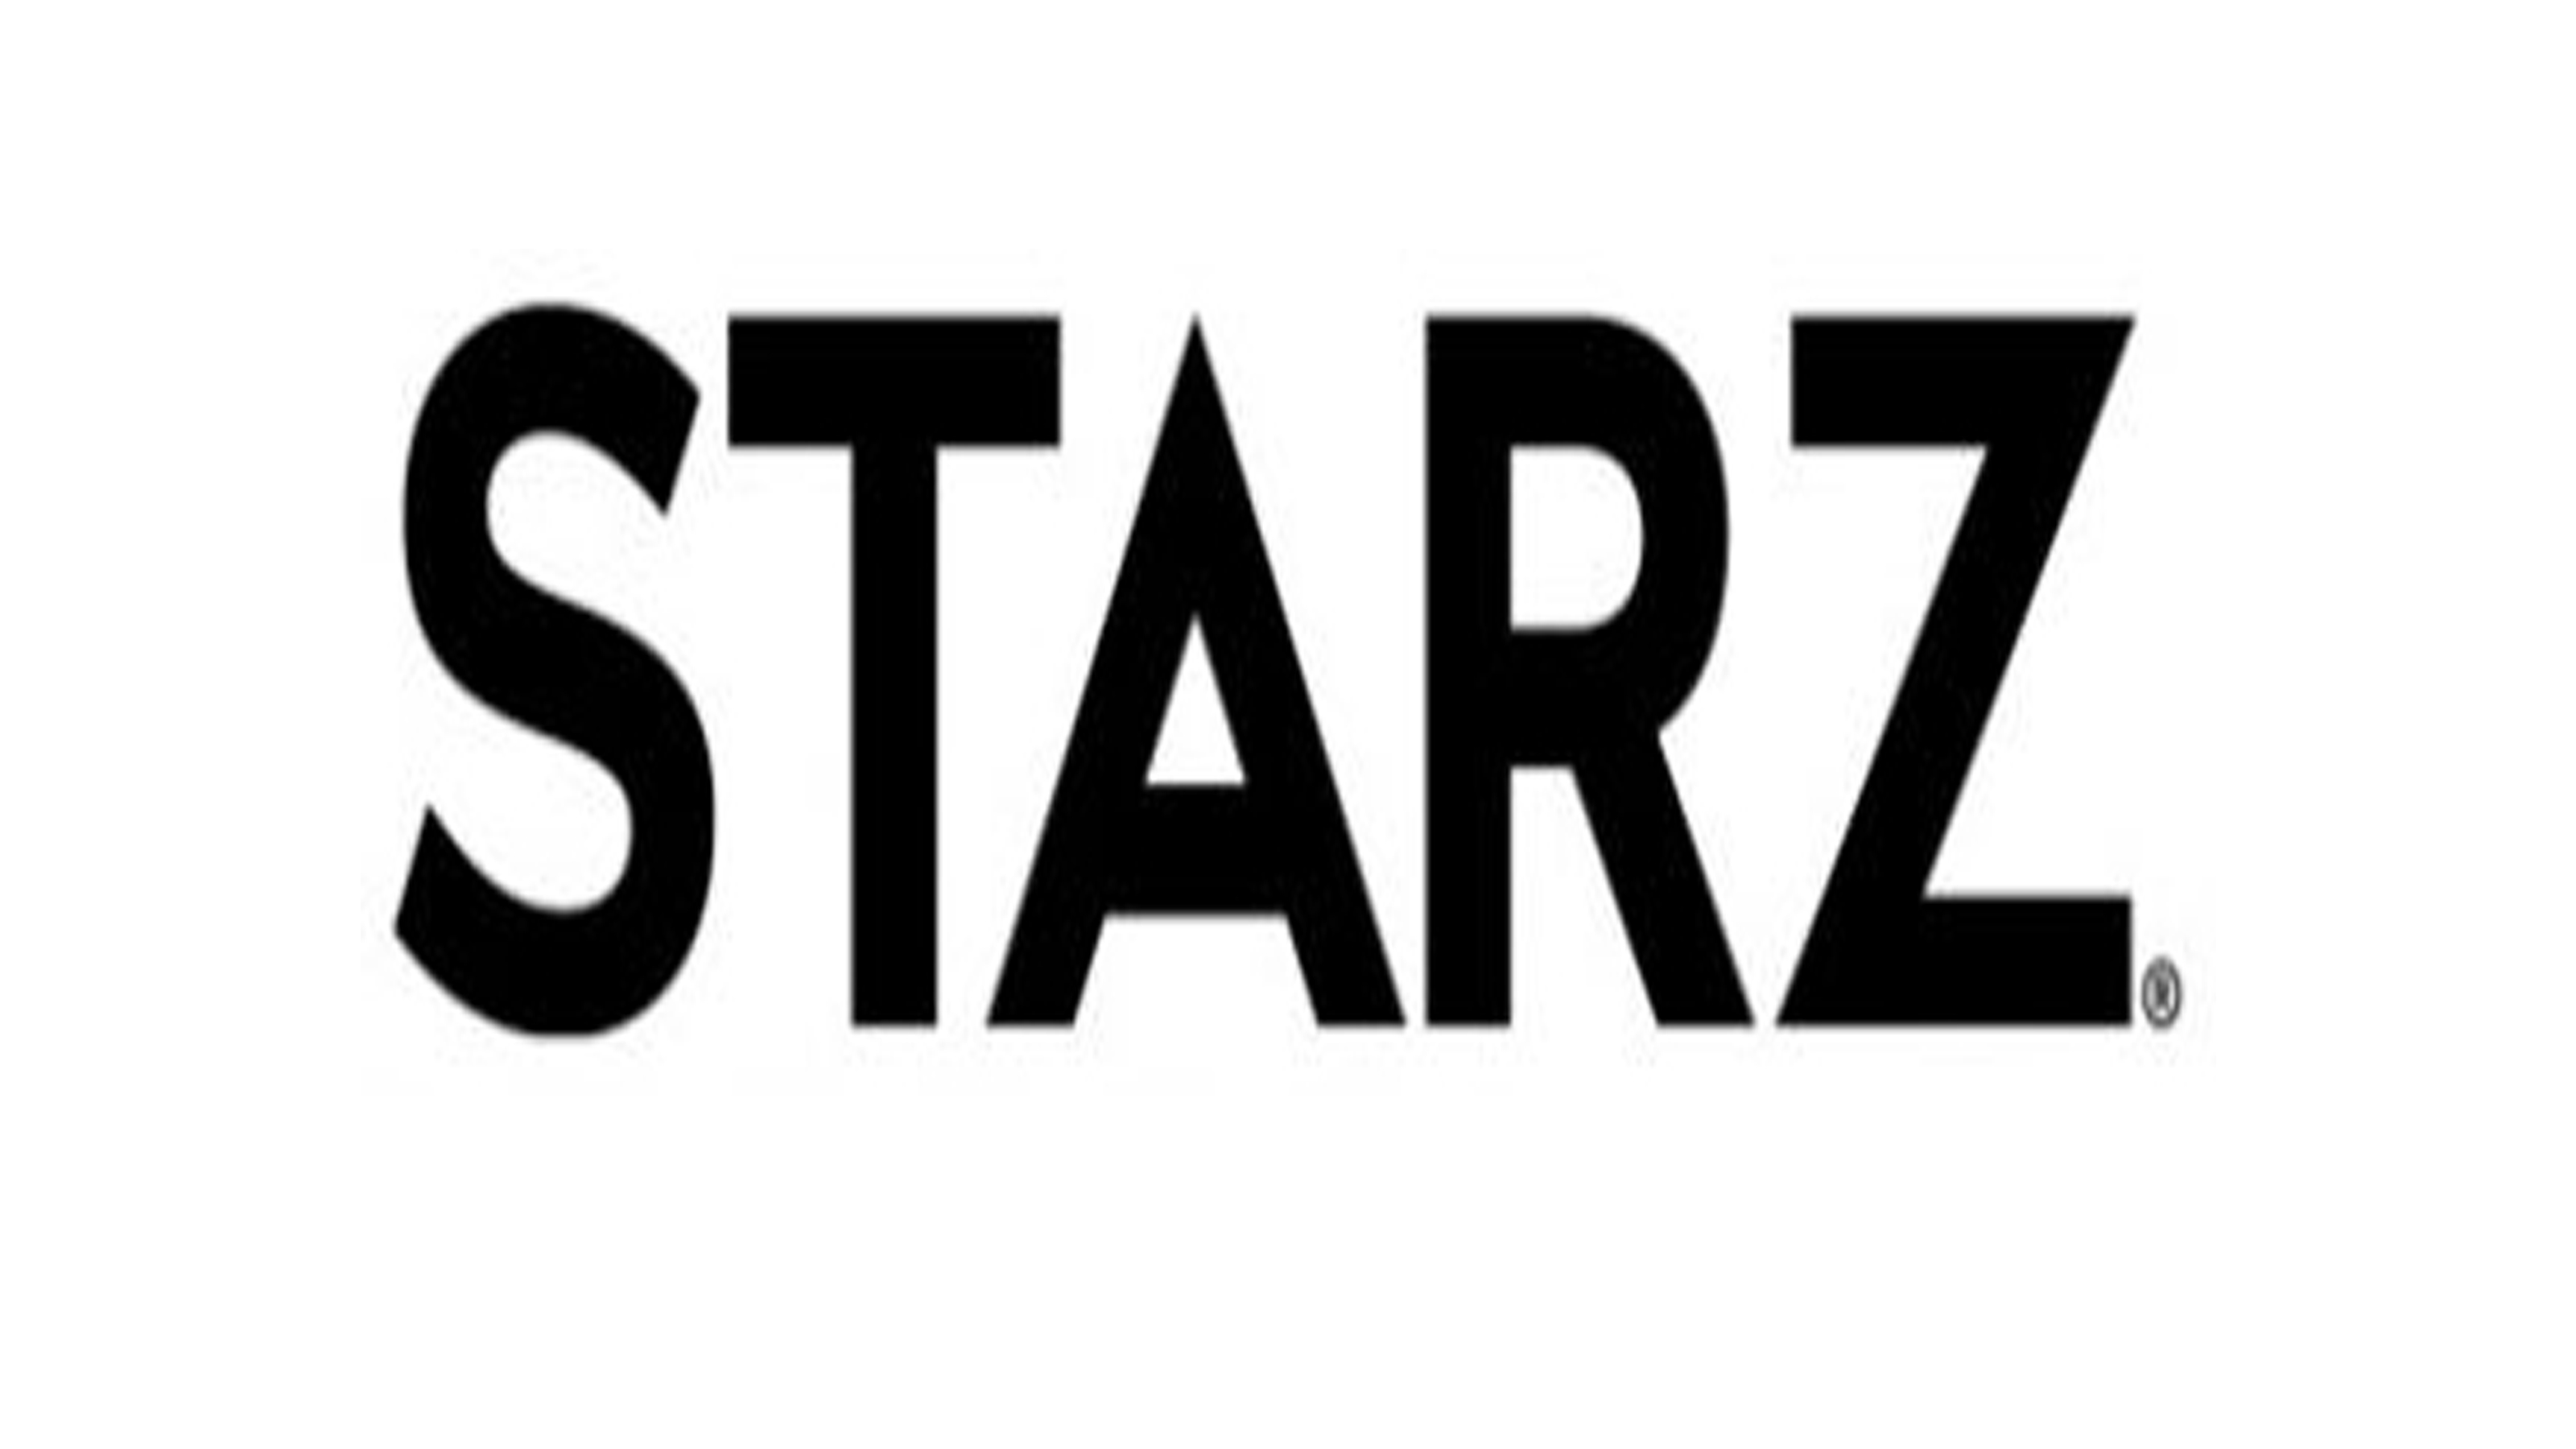 starz-featured-logo